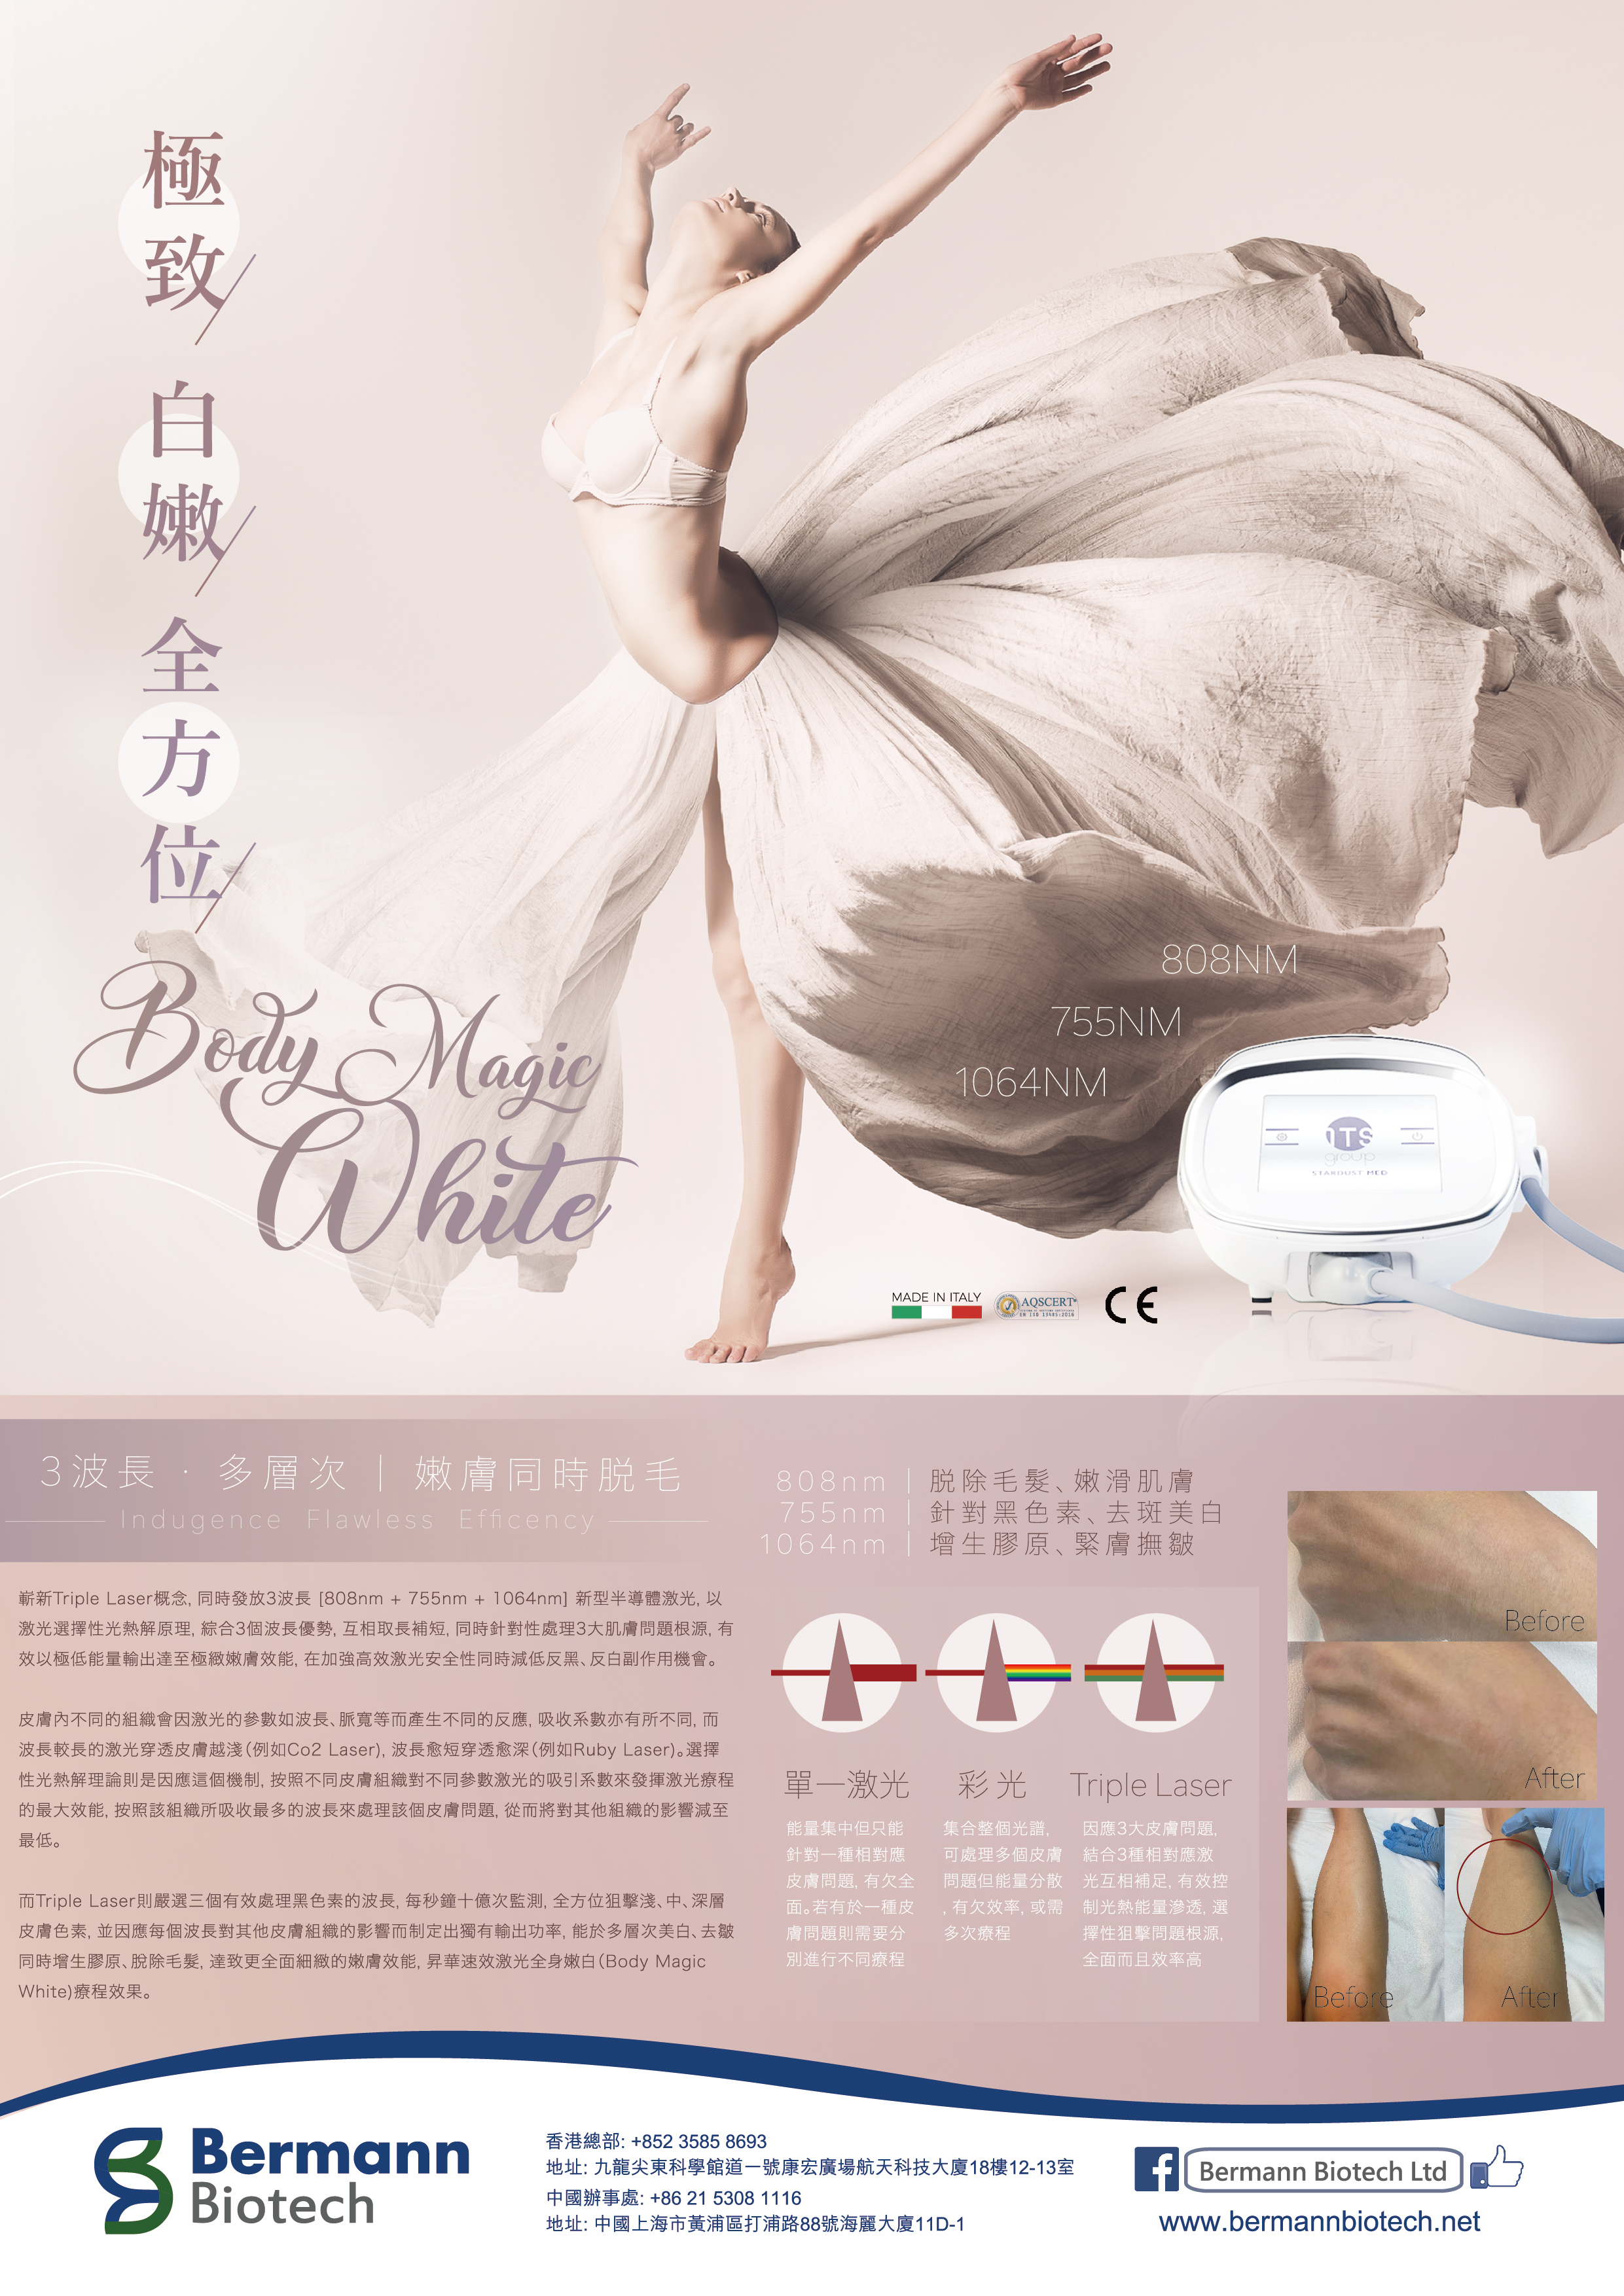 Body magic White